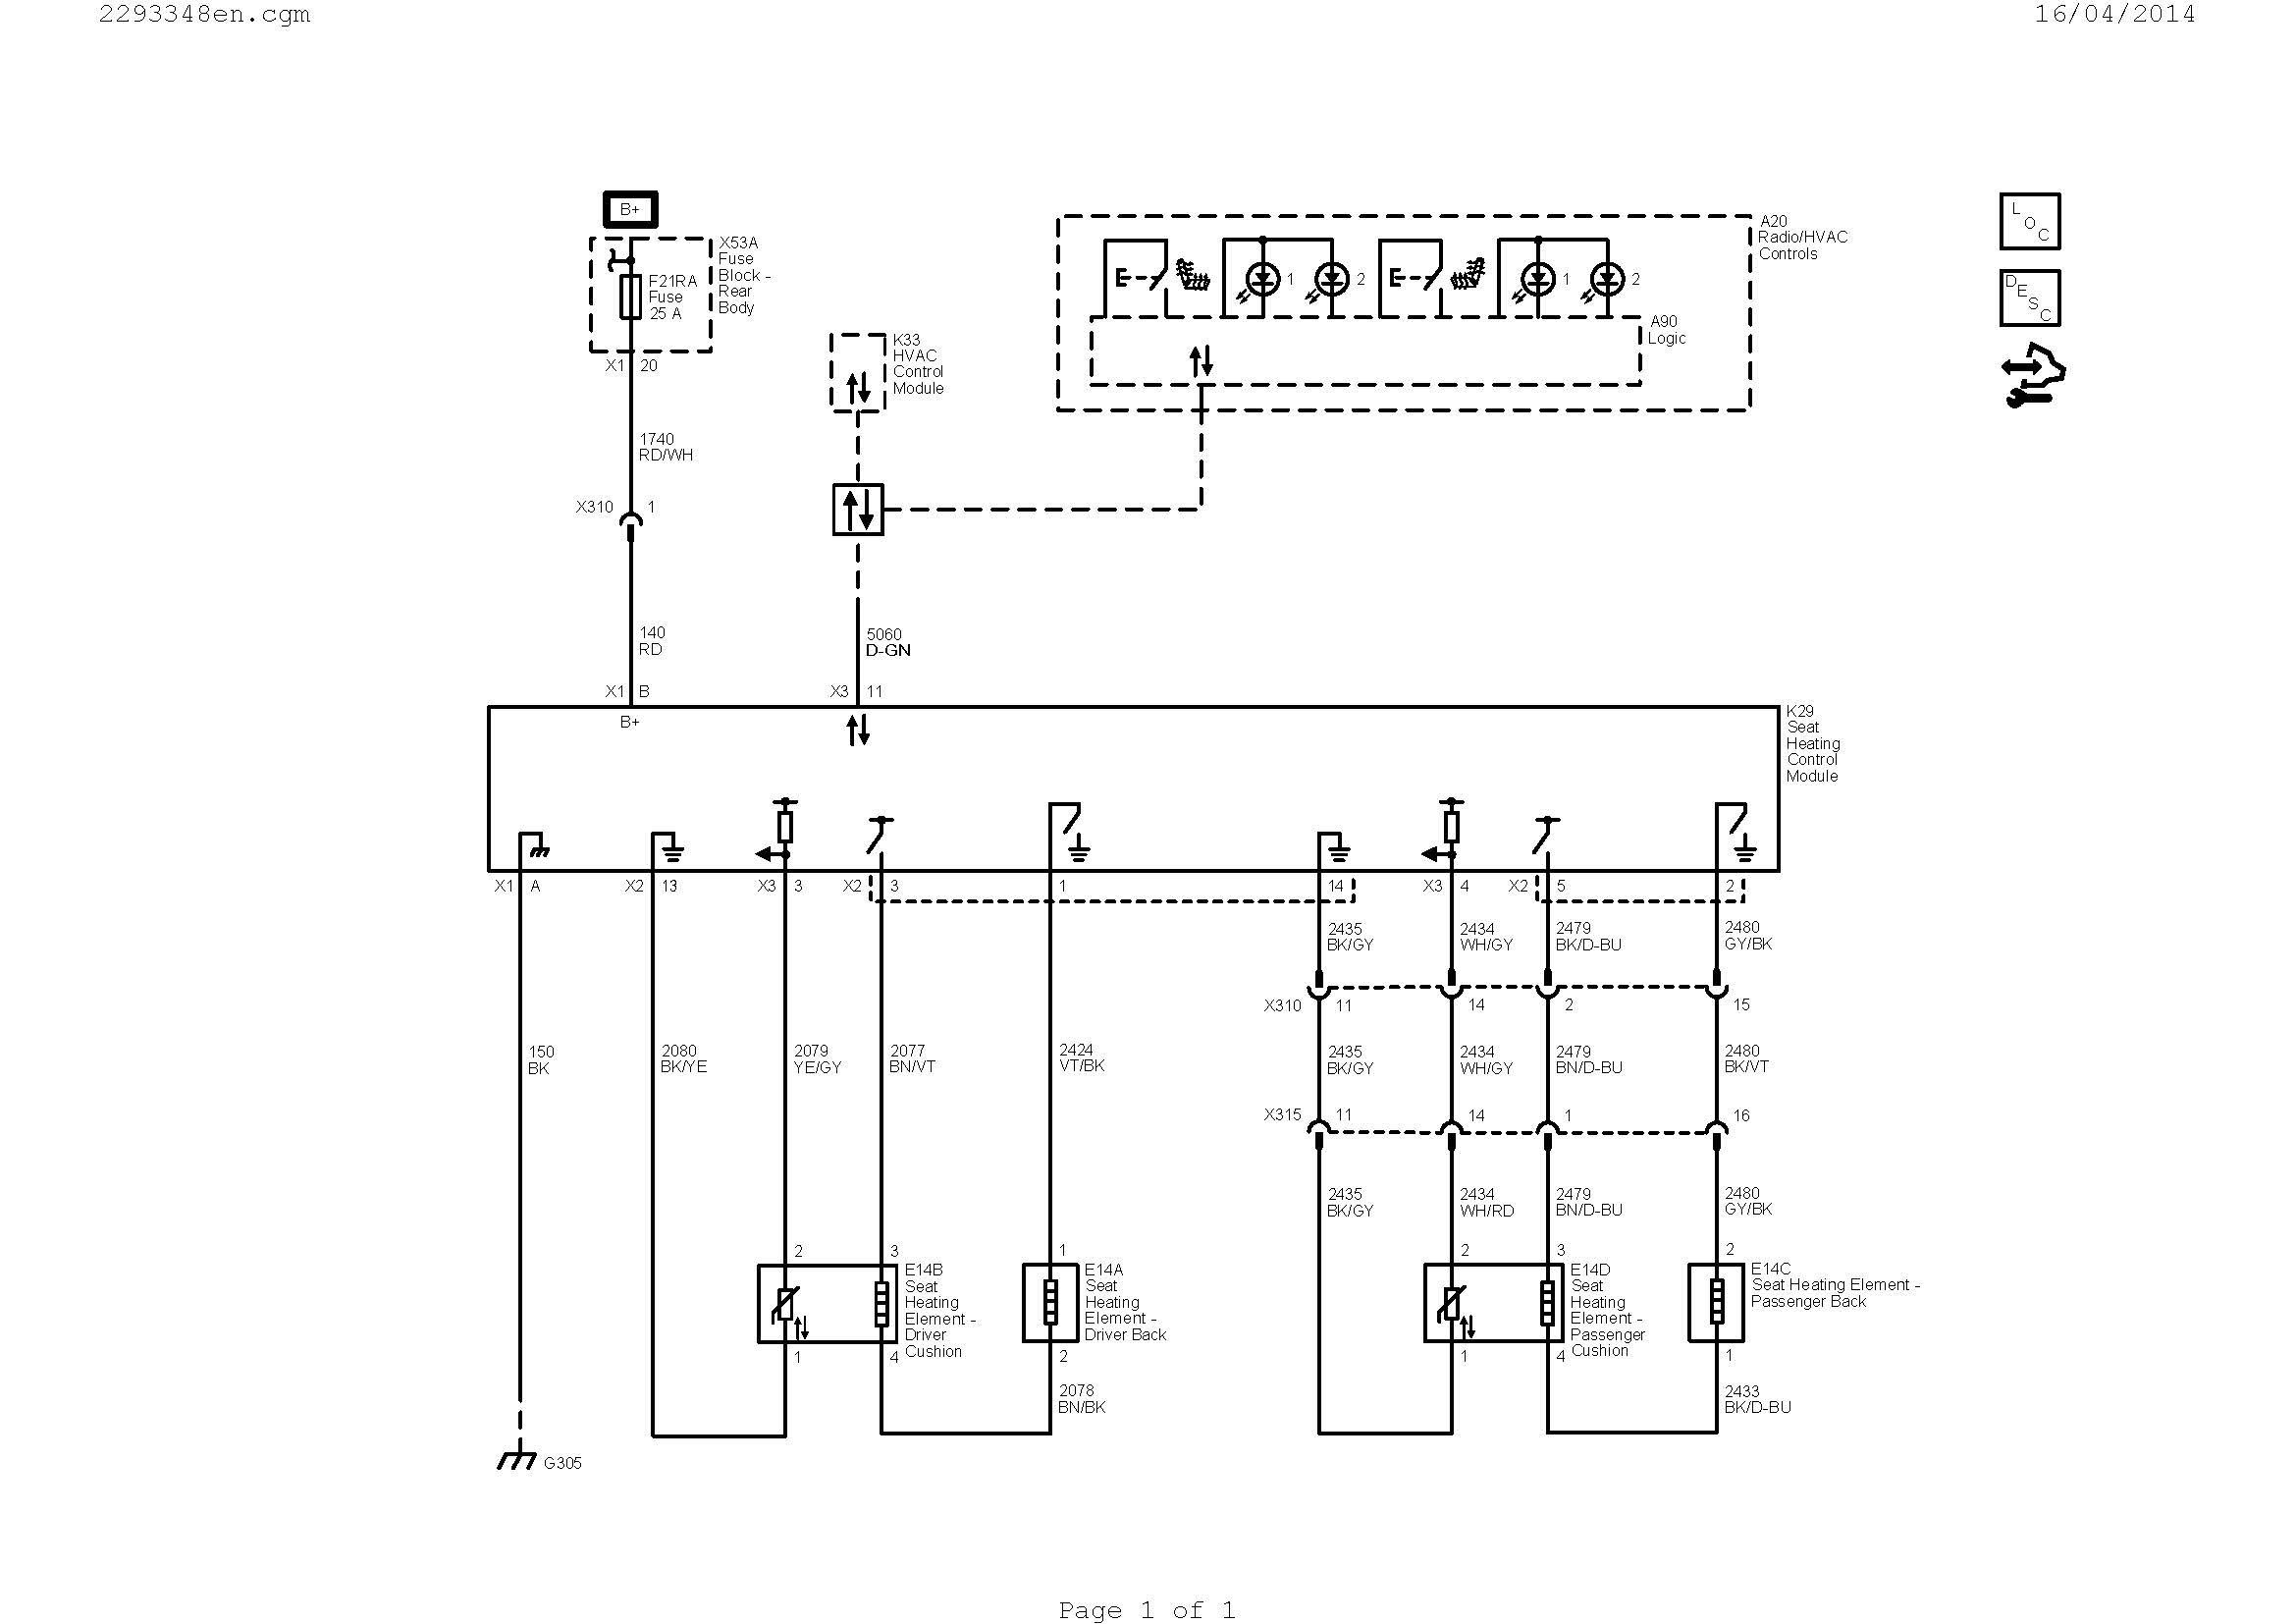 homeline load center type 3r wiring diagram electrical wiring diagrams  homeline load center 100 amp wiring